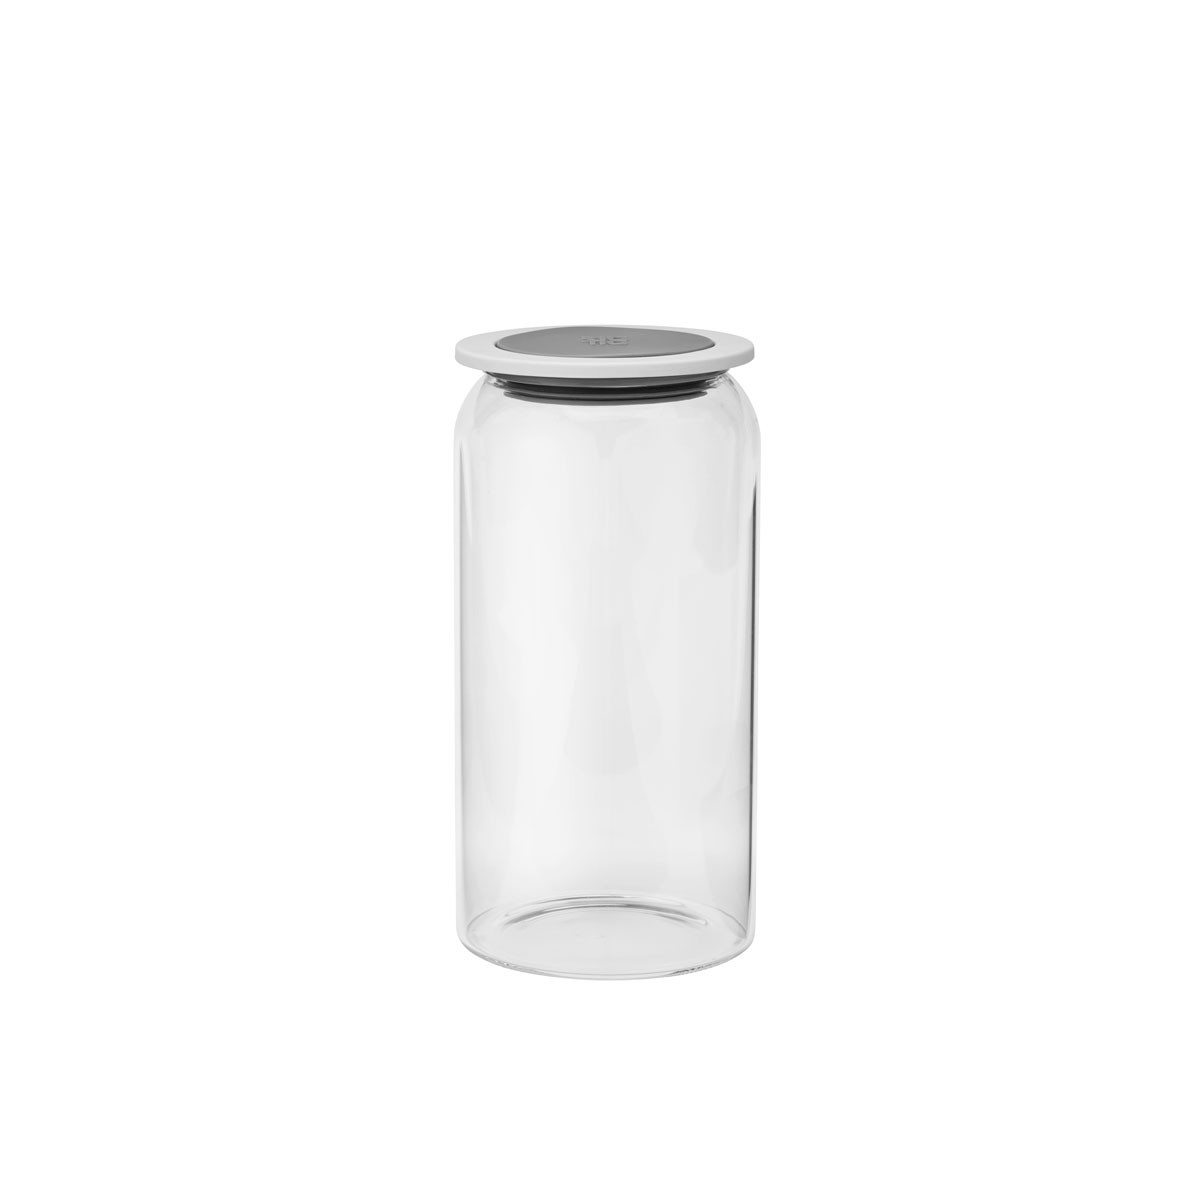 "Vorratsglas ""Goodies"" - 1,5 Liter von Rig Tig by Stelton"